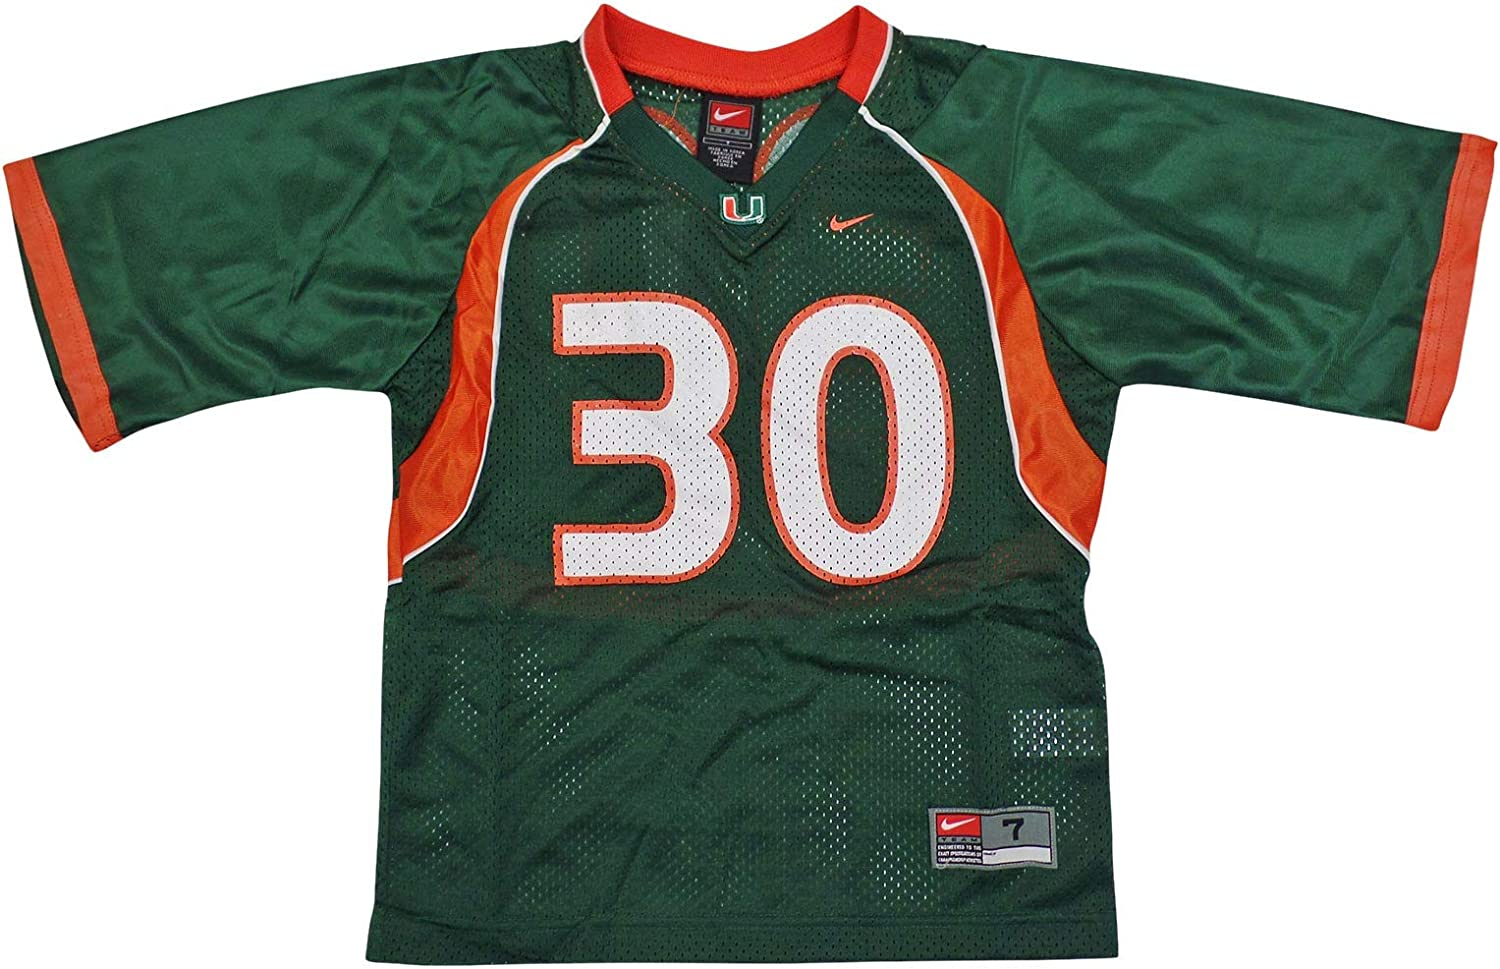 Nike Miami Hurricanes (University of) Kids/Youth College Football Jersey Size